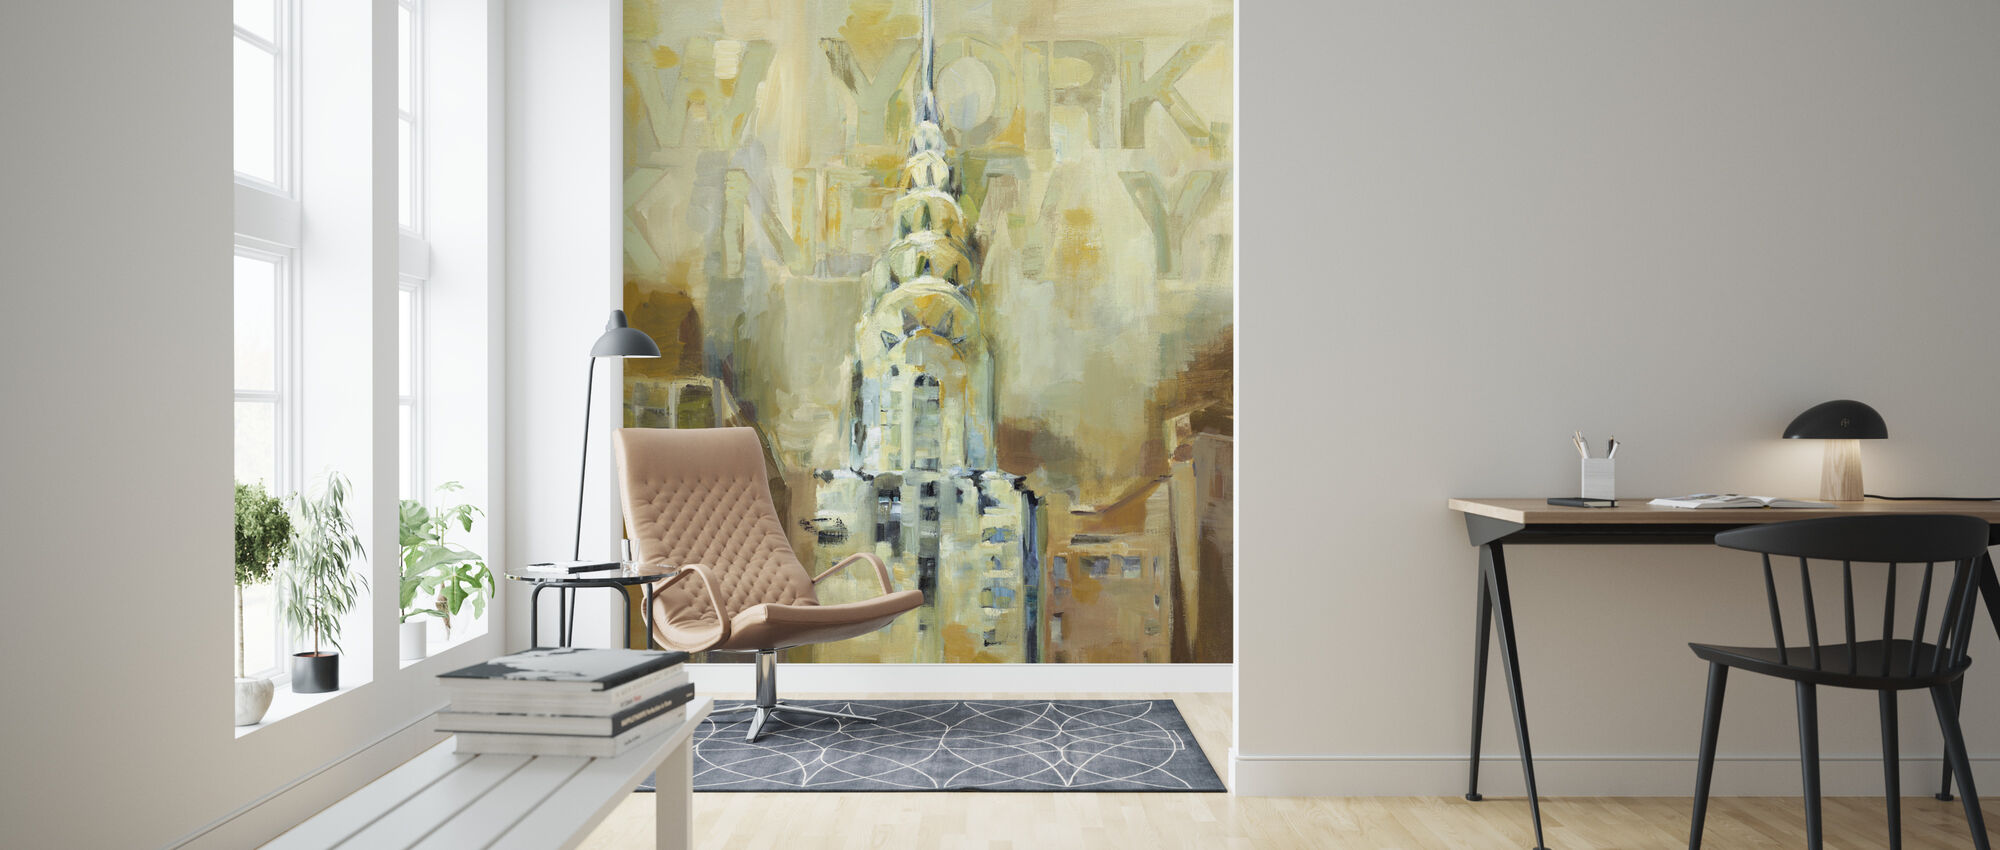 The Chrysler Building - Wallpaper - Living Room